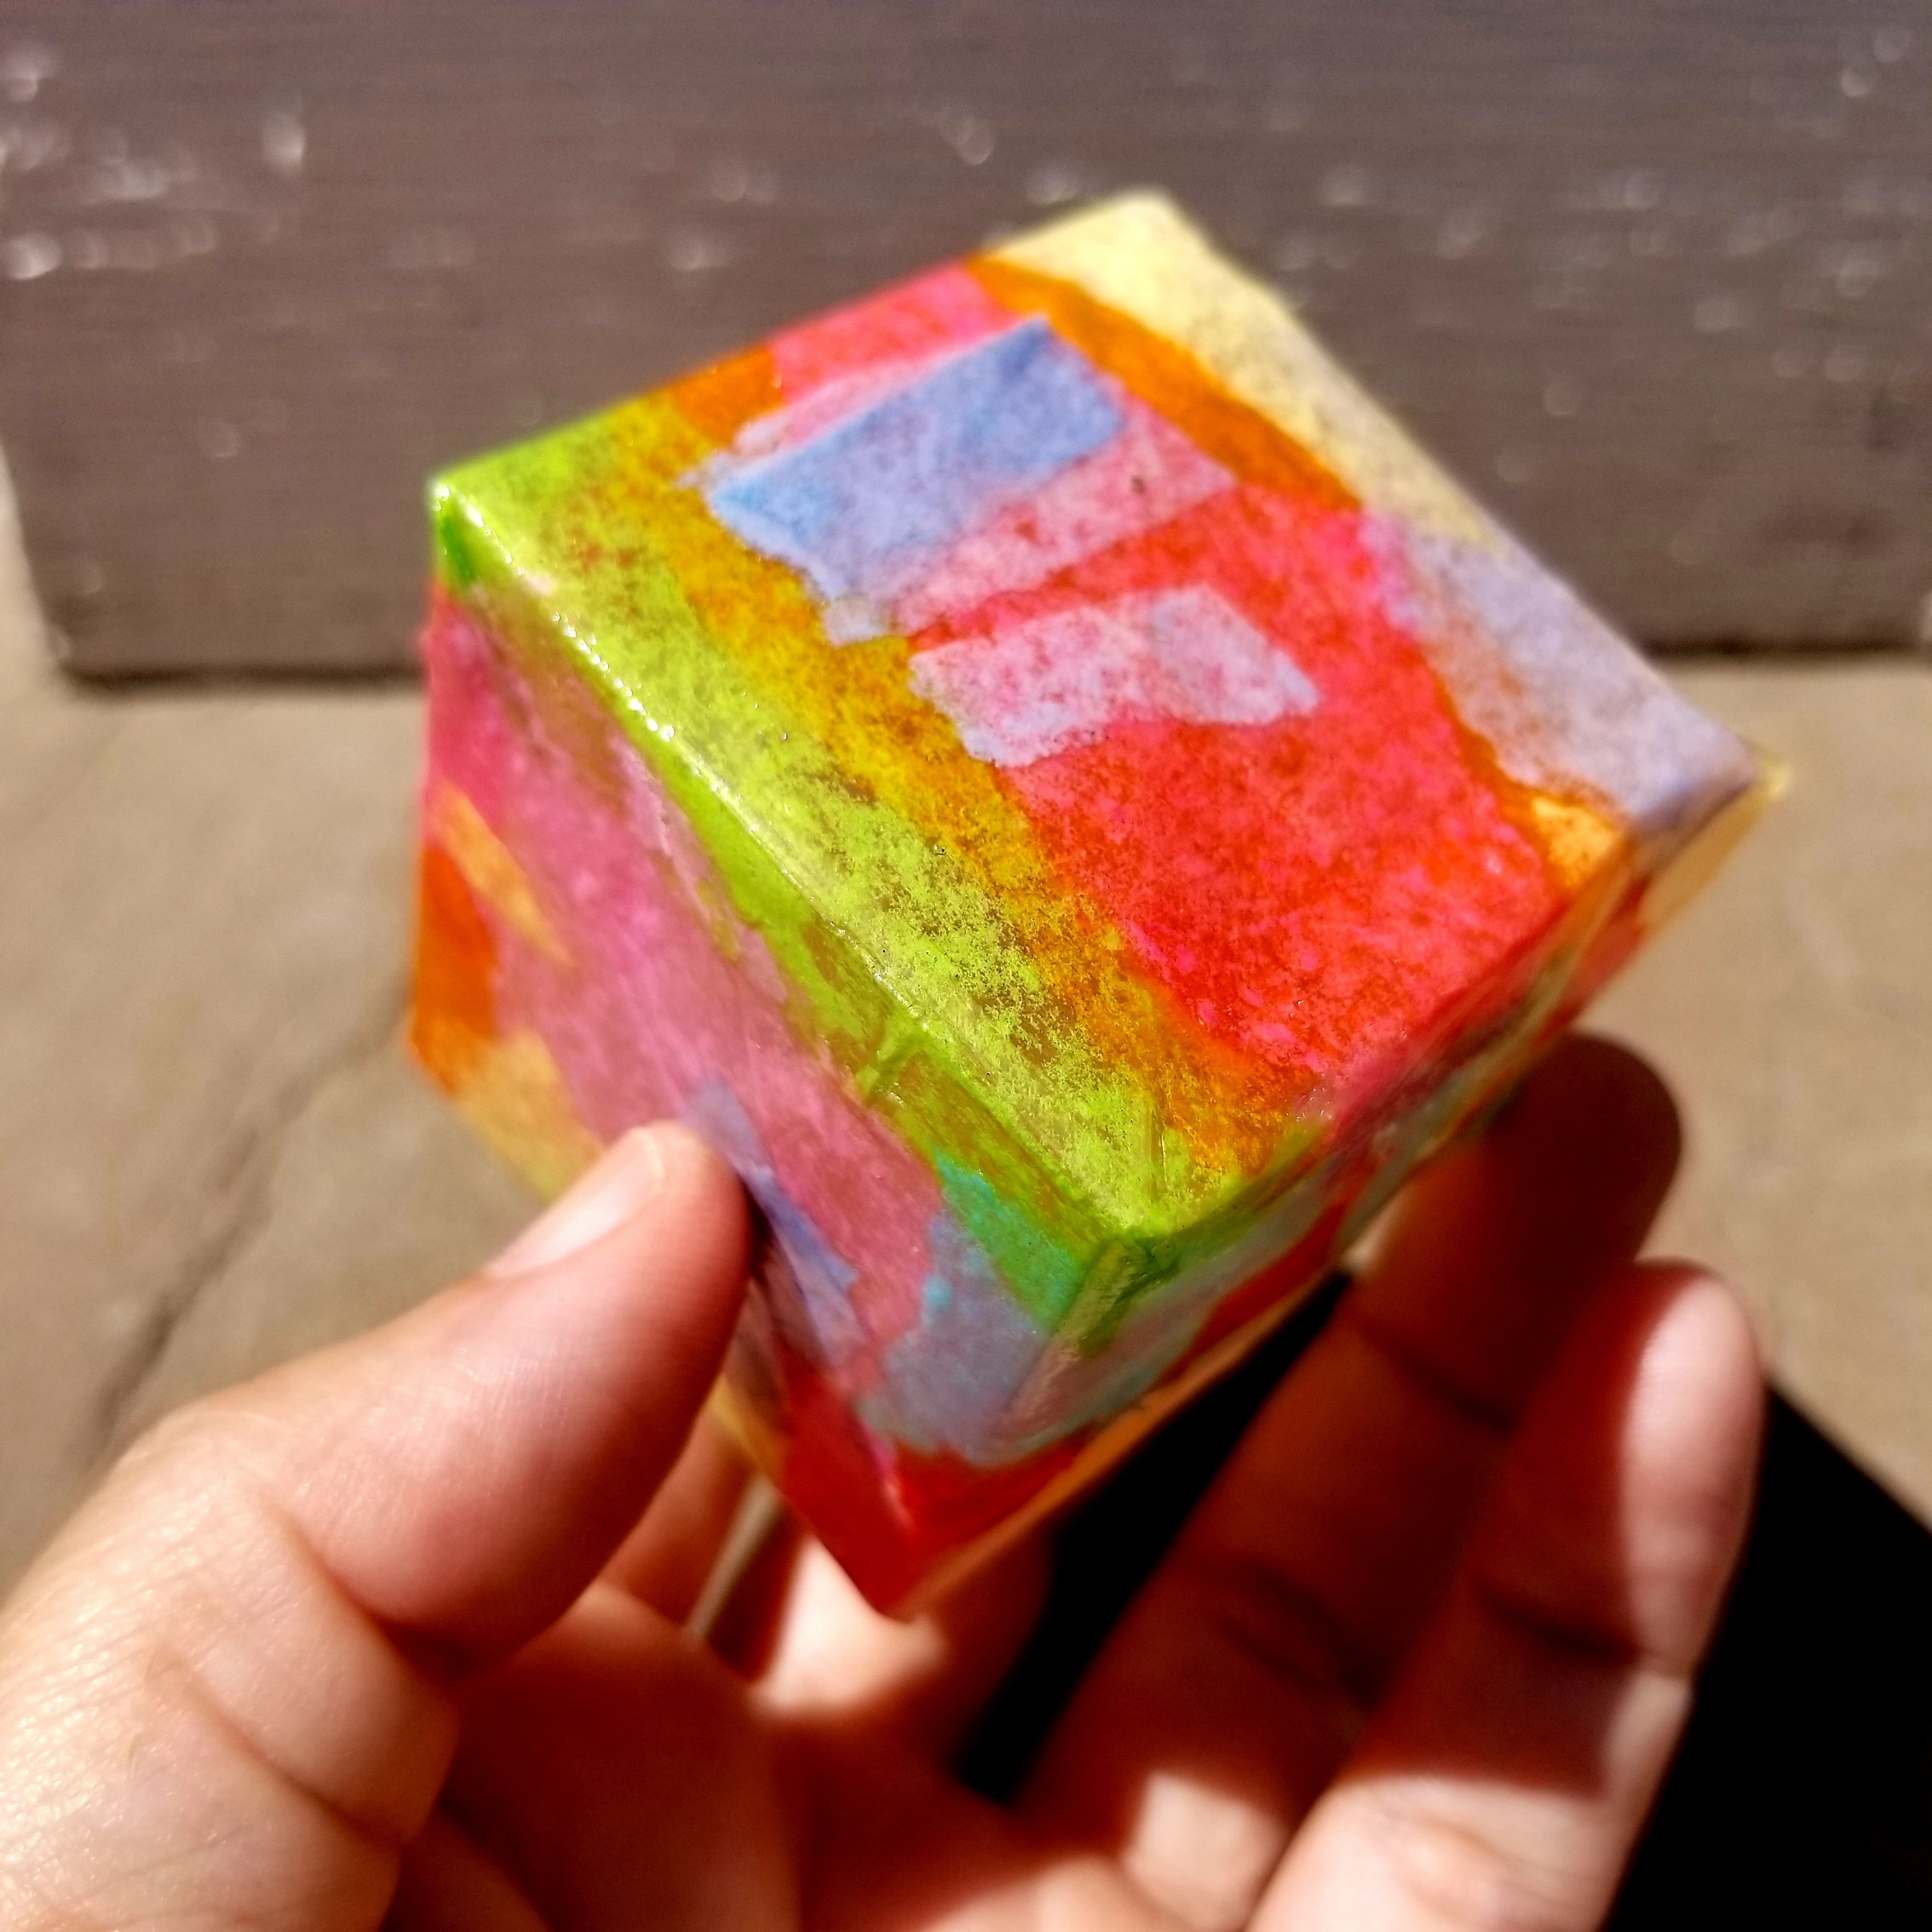 Don't pop this cube in your mouth please!